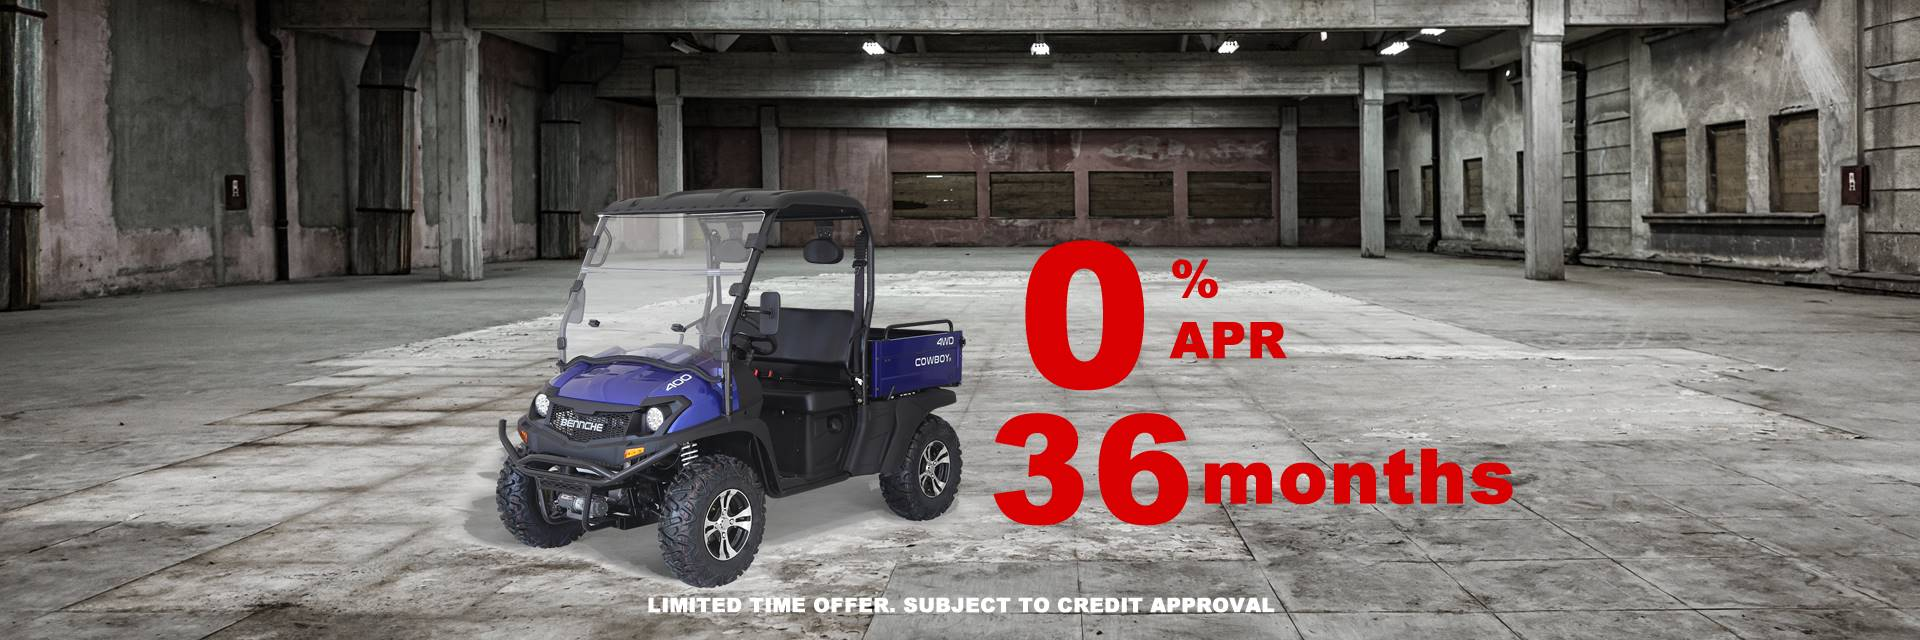 Bennche - 0% APR for 36 Months